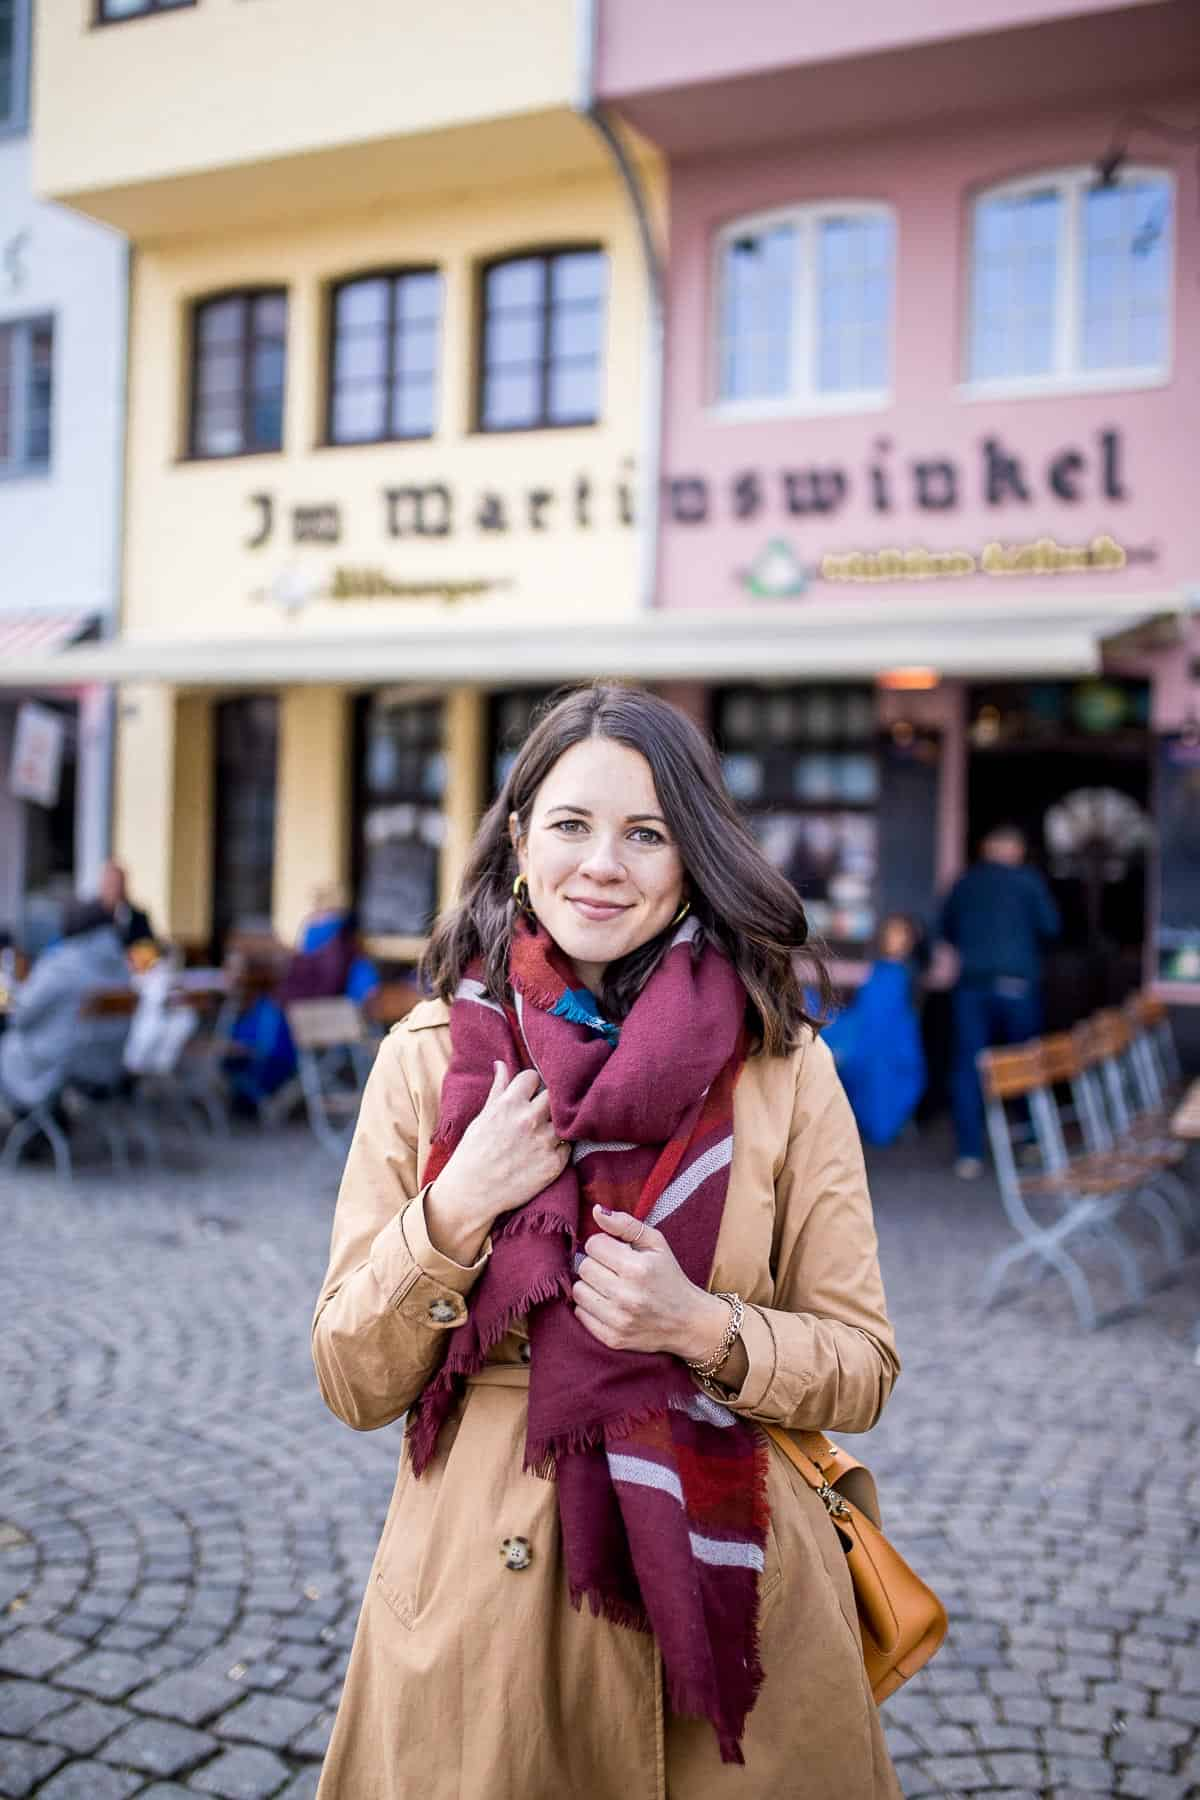 Jessica Camerata is sharing her Travel Guide To Germany & Belgium